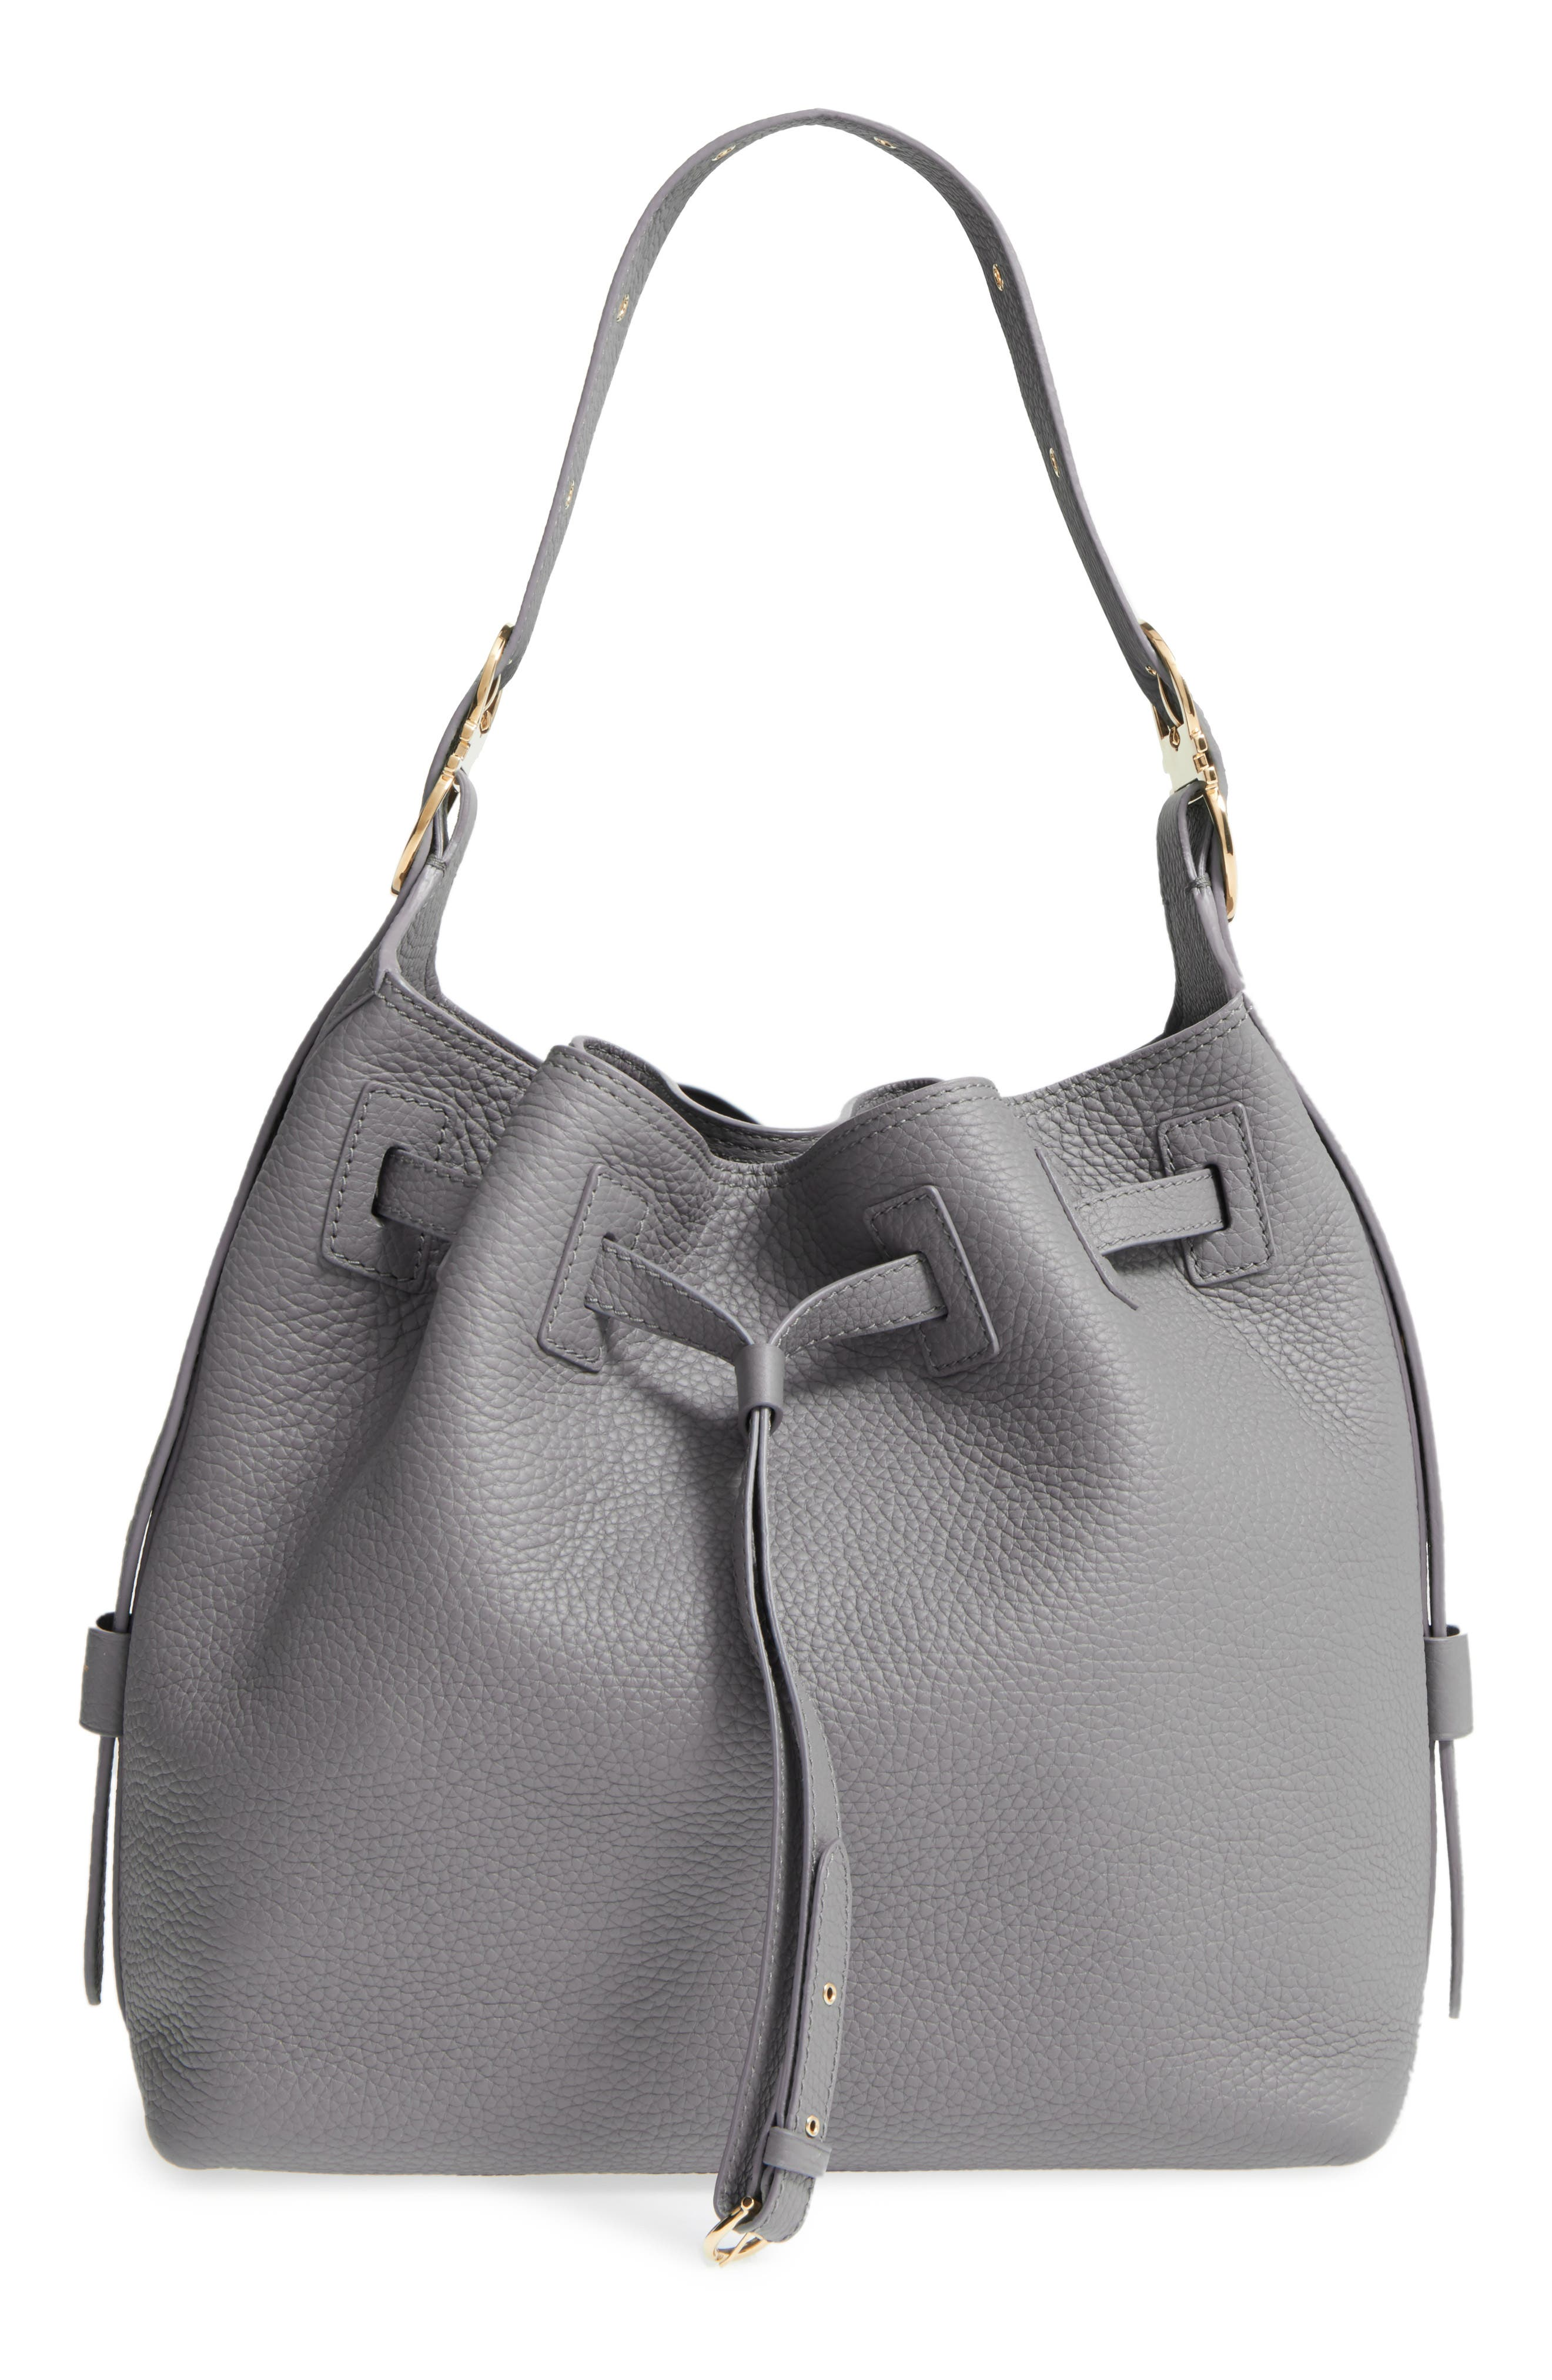 Salvatore Ferragamo Pebbled Leather Drawstring Bucket Bag